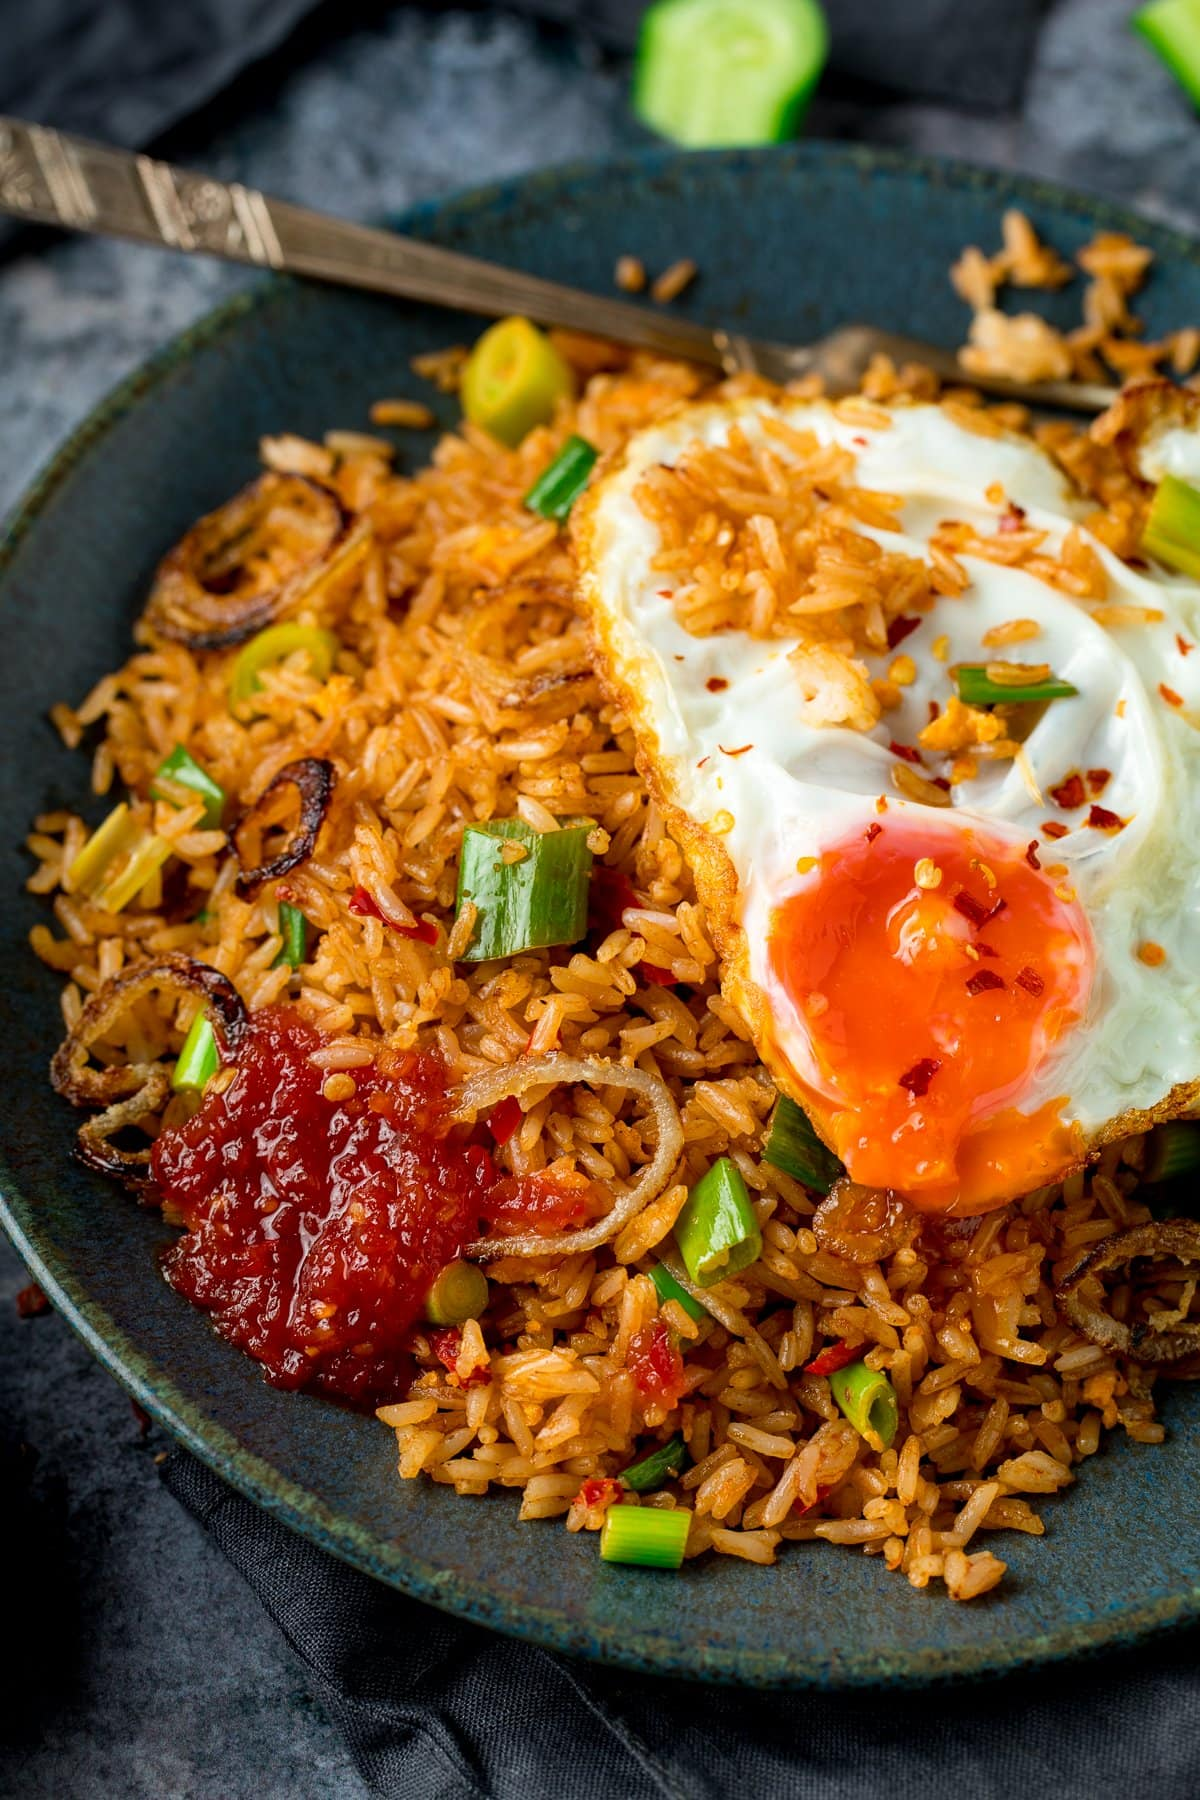 nasi goreng rice on a plate, topped with a fried egg and chilli sauce